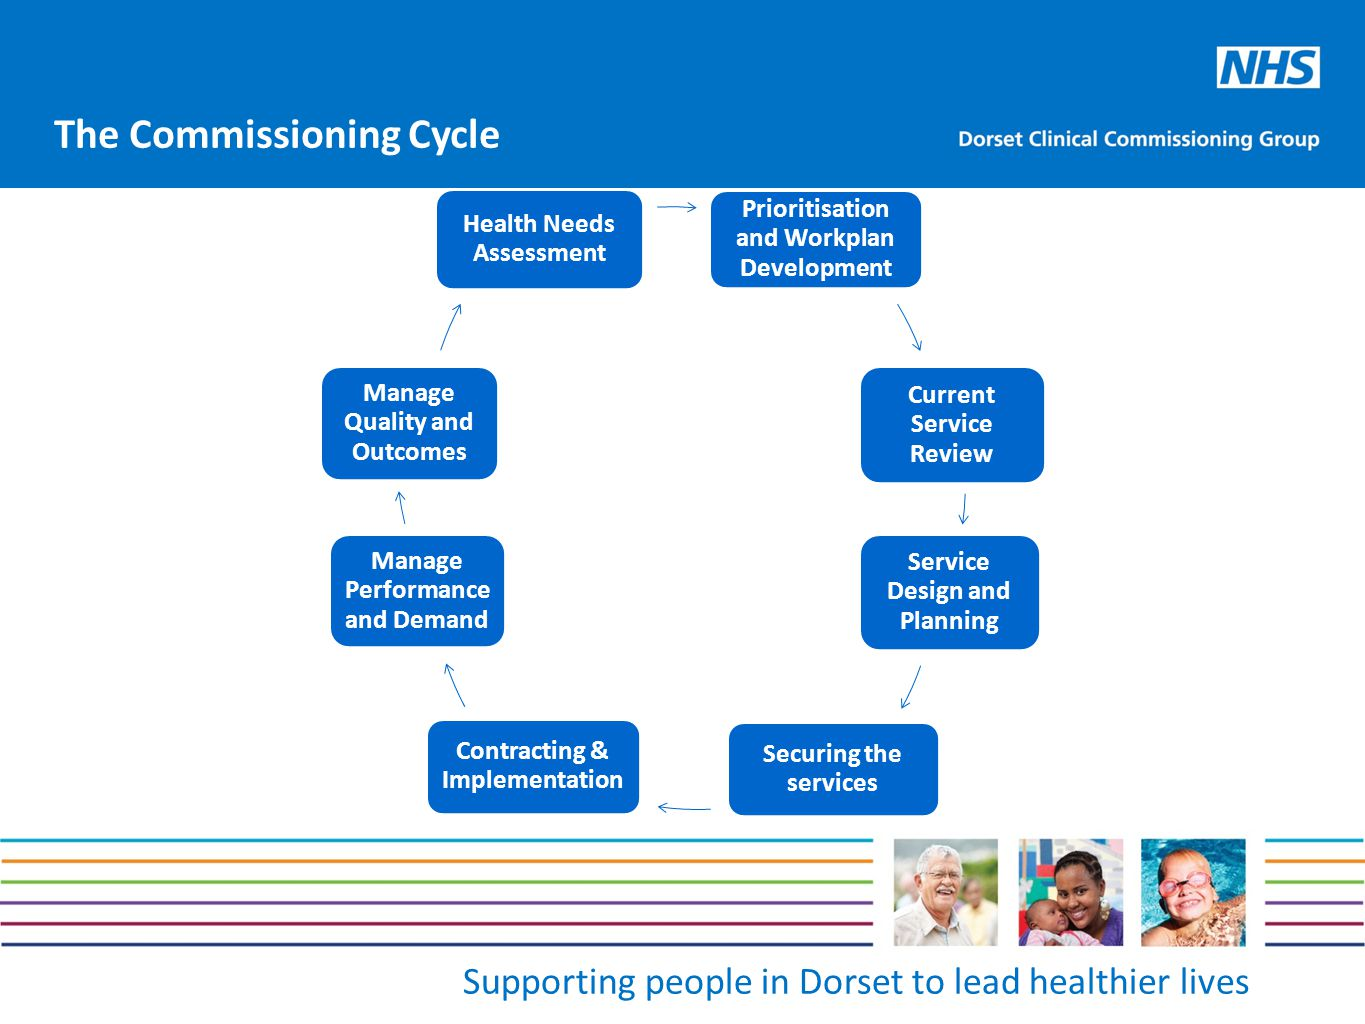 Supporting people in Dorset to lead healthier lives Health Needs Assessment Prioritisation and Workplan Development Current Service Review Service Design and Planning Securing the services Contracting & Implementation Manage Performance and Demand Manage Quality and Outcomes The Commissioning Cycle